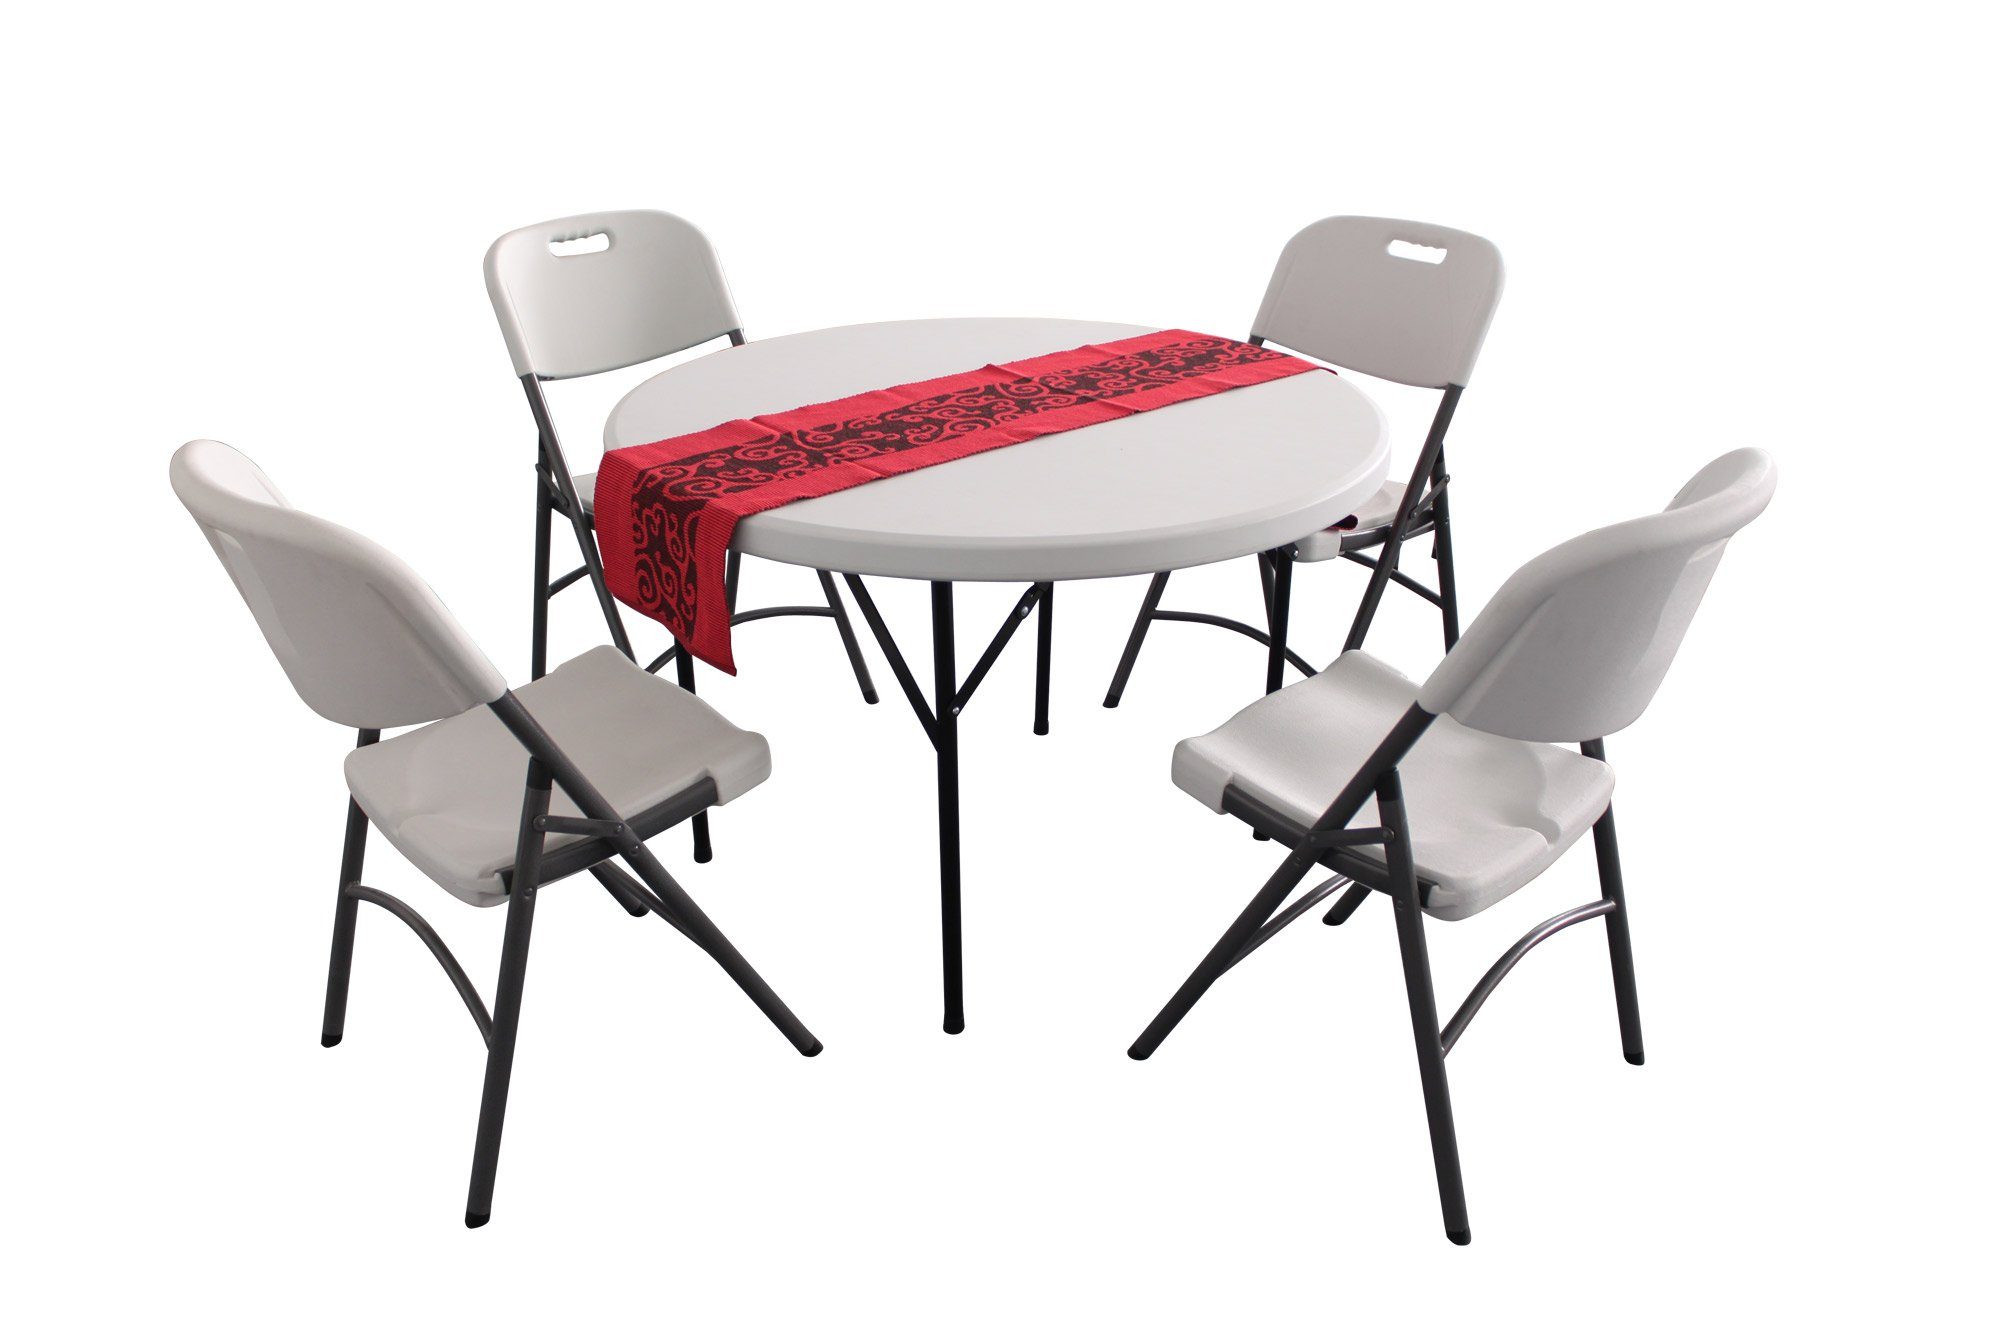 plastic round folding tables and chairs hdpe HY R110 &HY Y60A